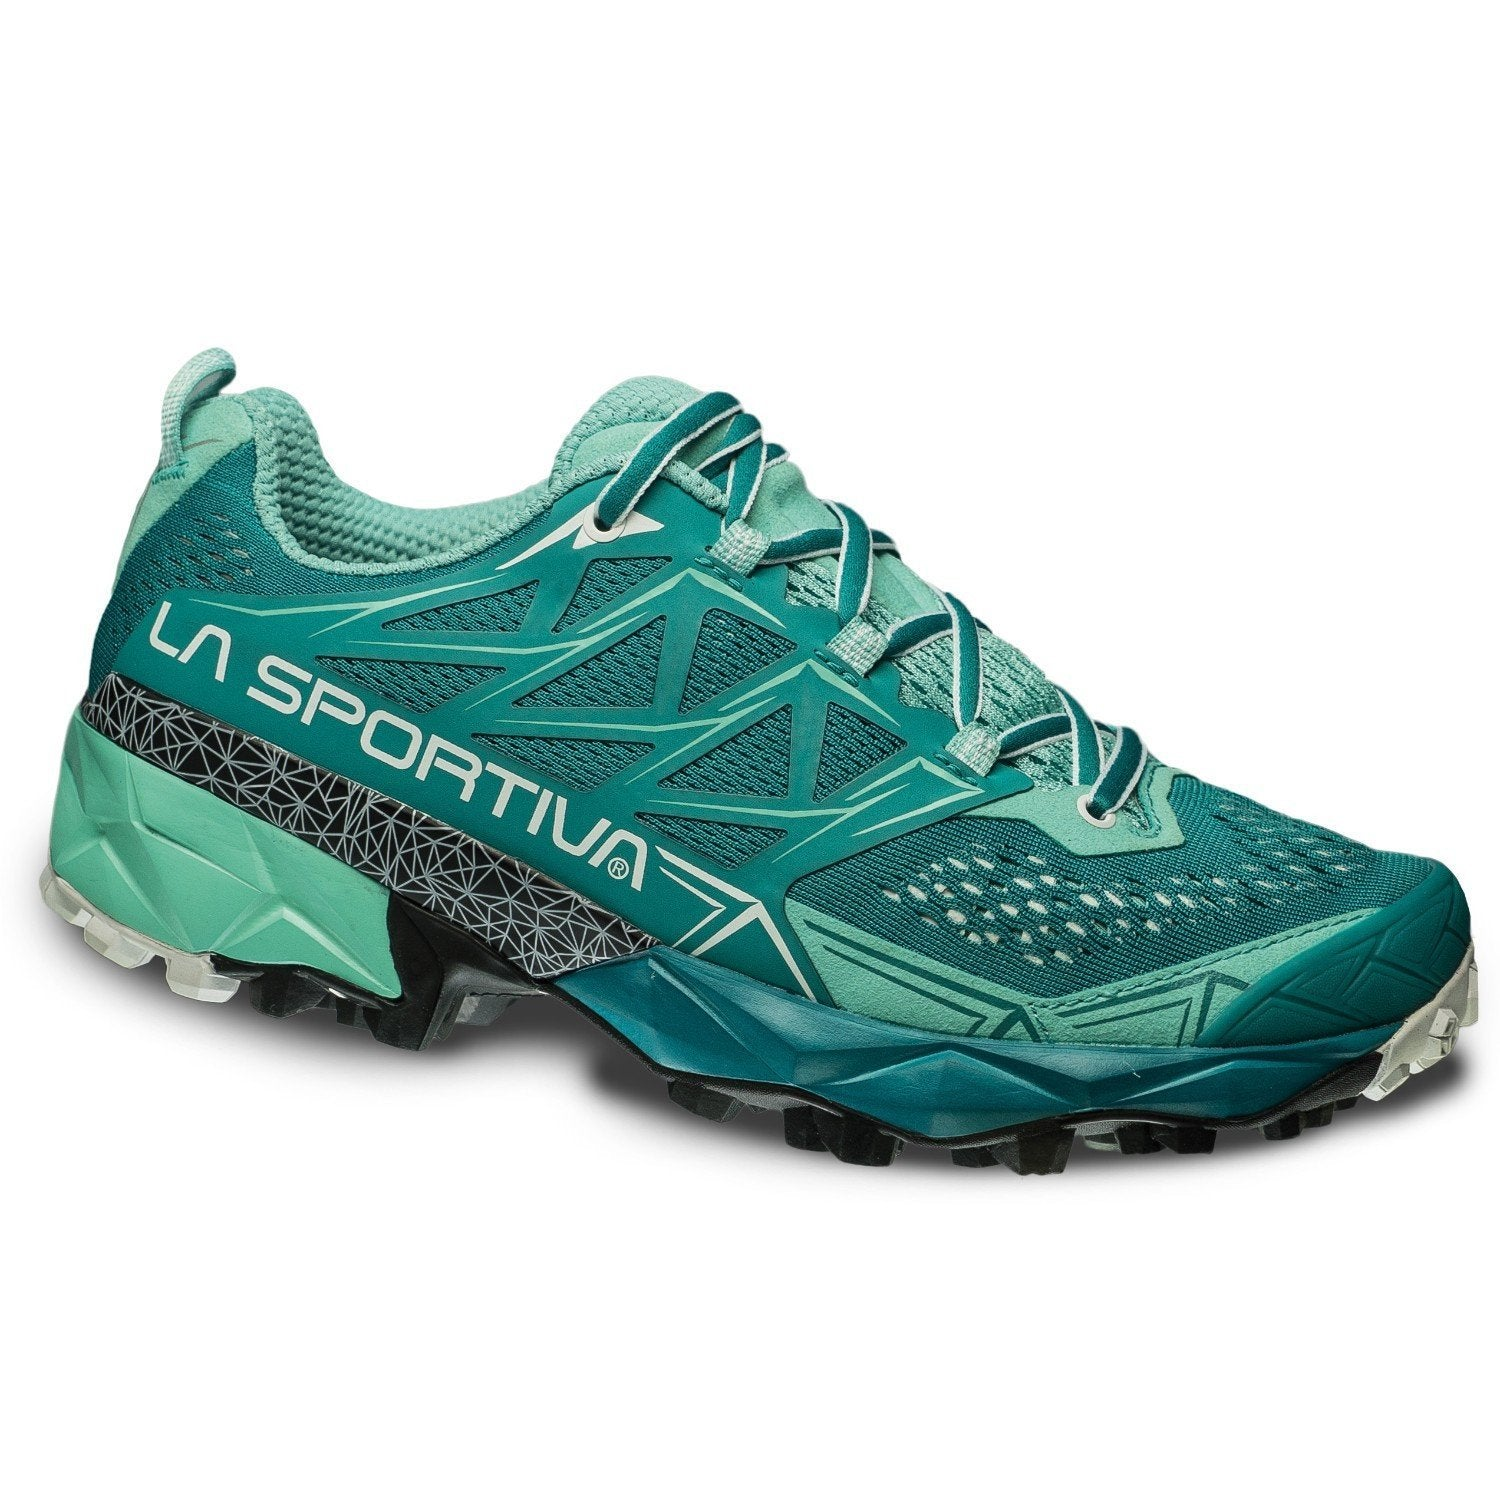 La Sportiva Akyra Womens trail running shoe, outer side view in green colours